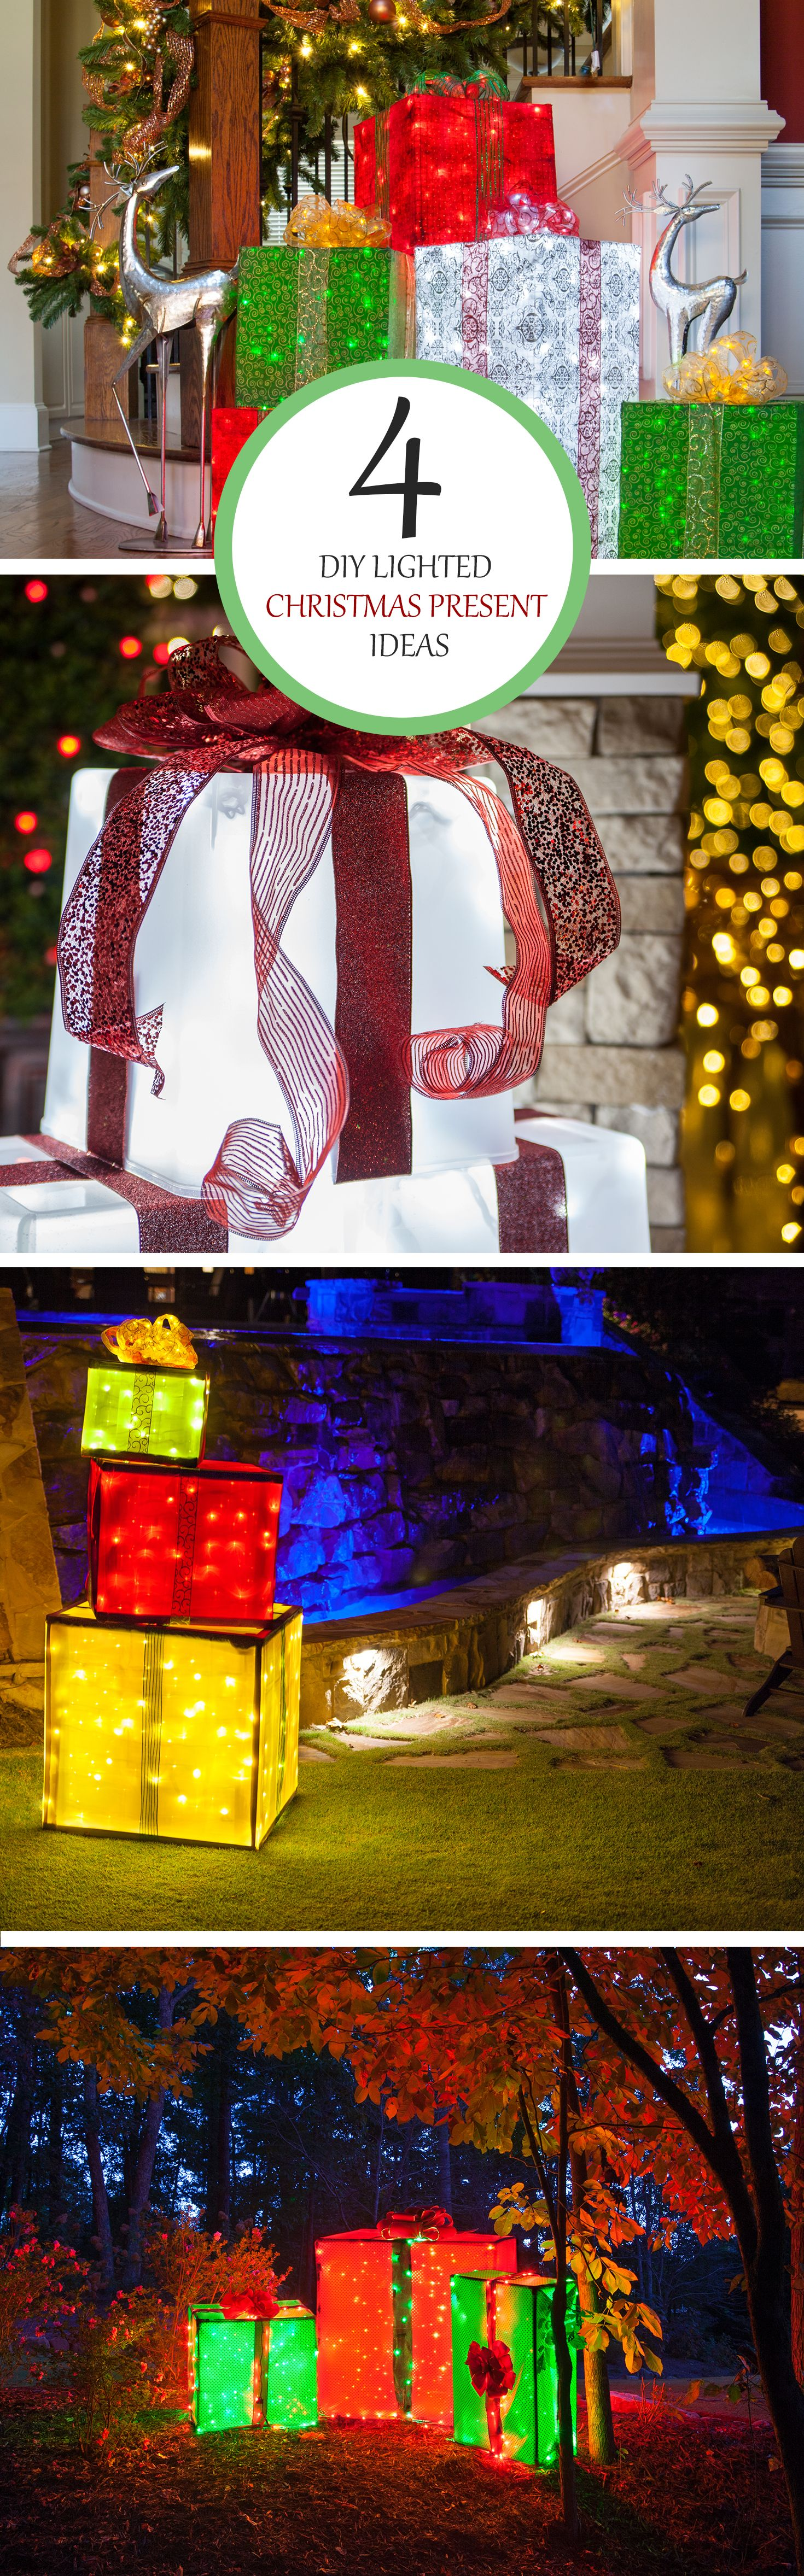 Lighted christmas gift boxes yard decor - Create Lighted Gift Boxes To Use As Outdoor Christmas Yard Decorations By Using Basic Materials